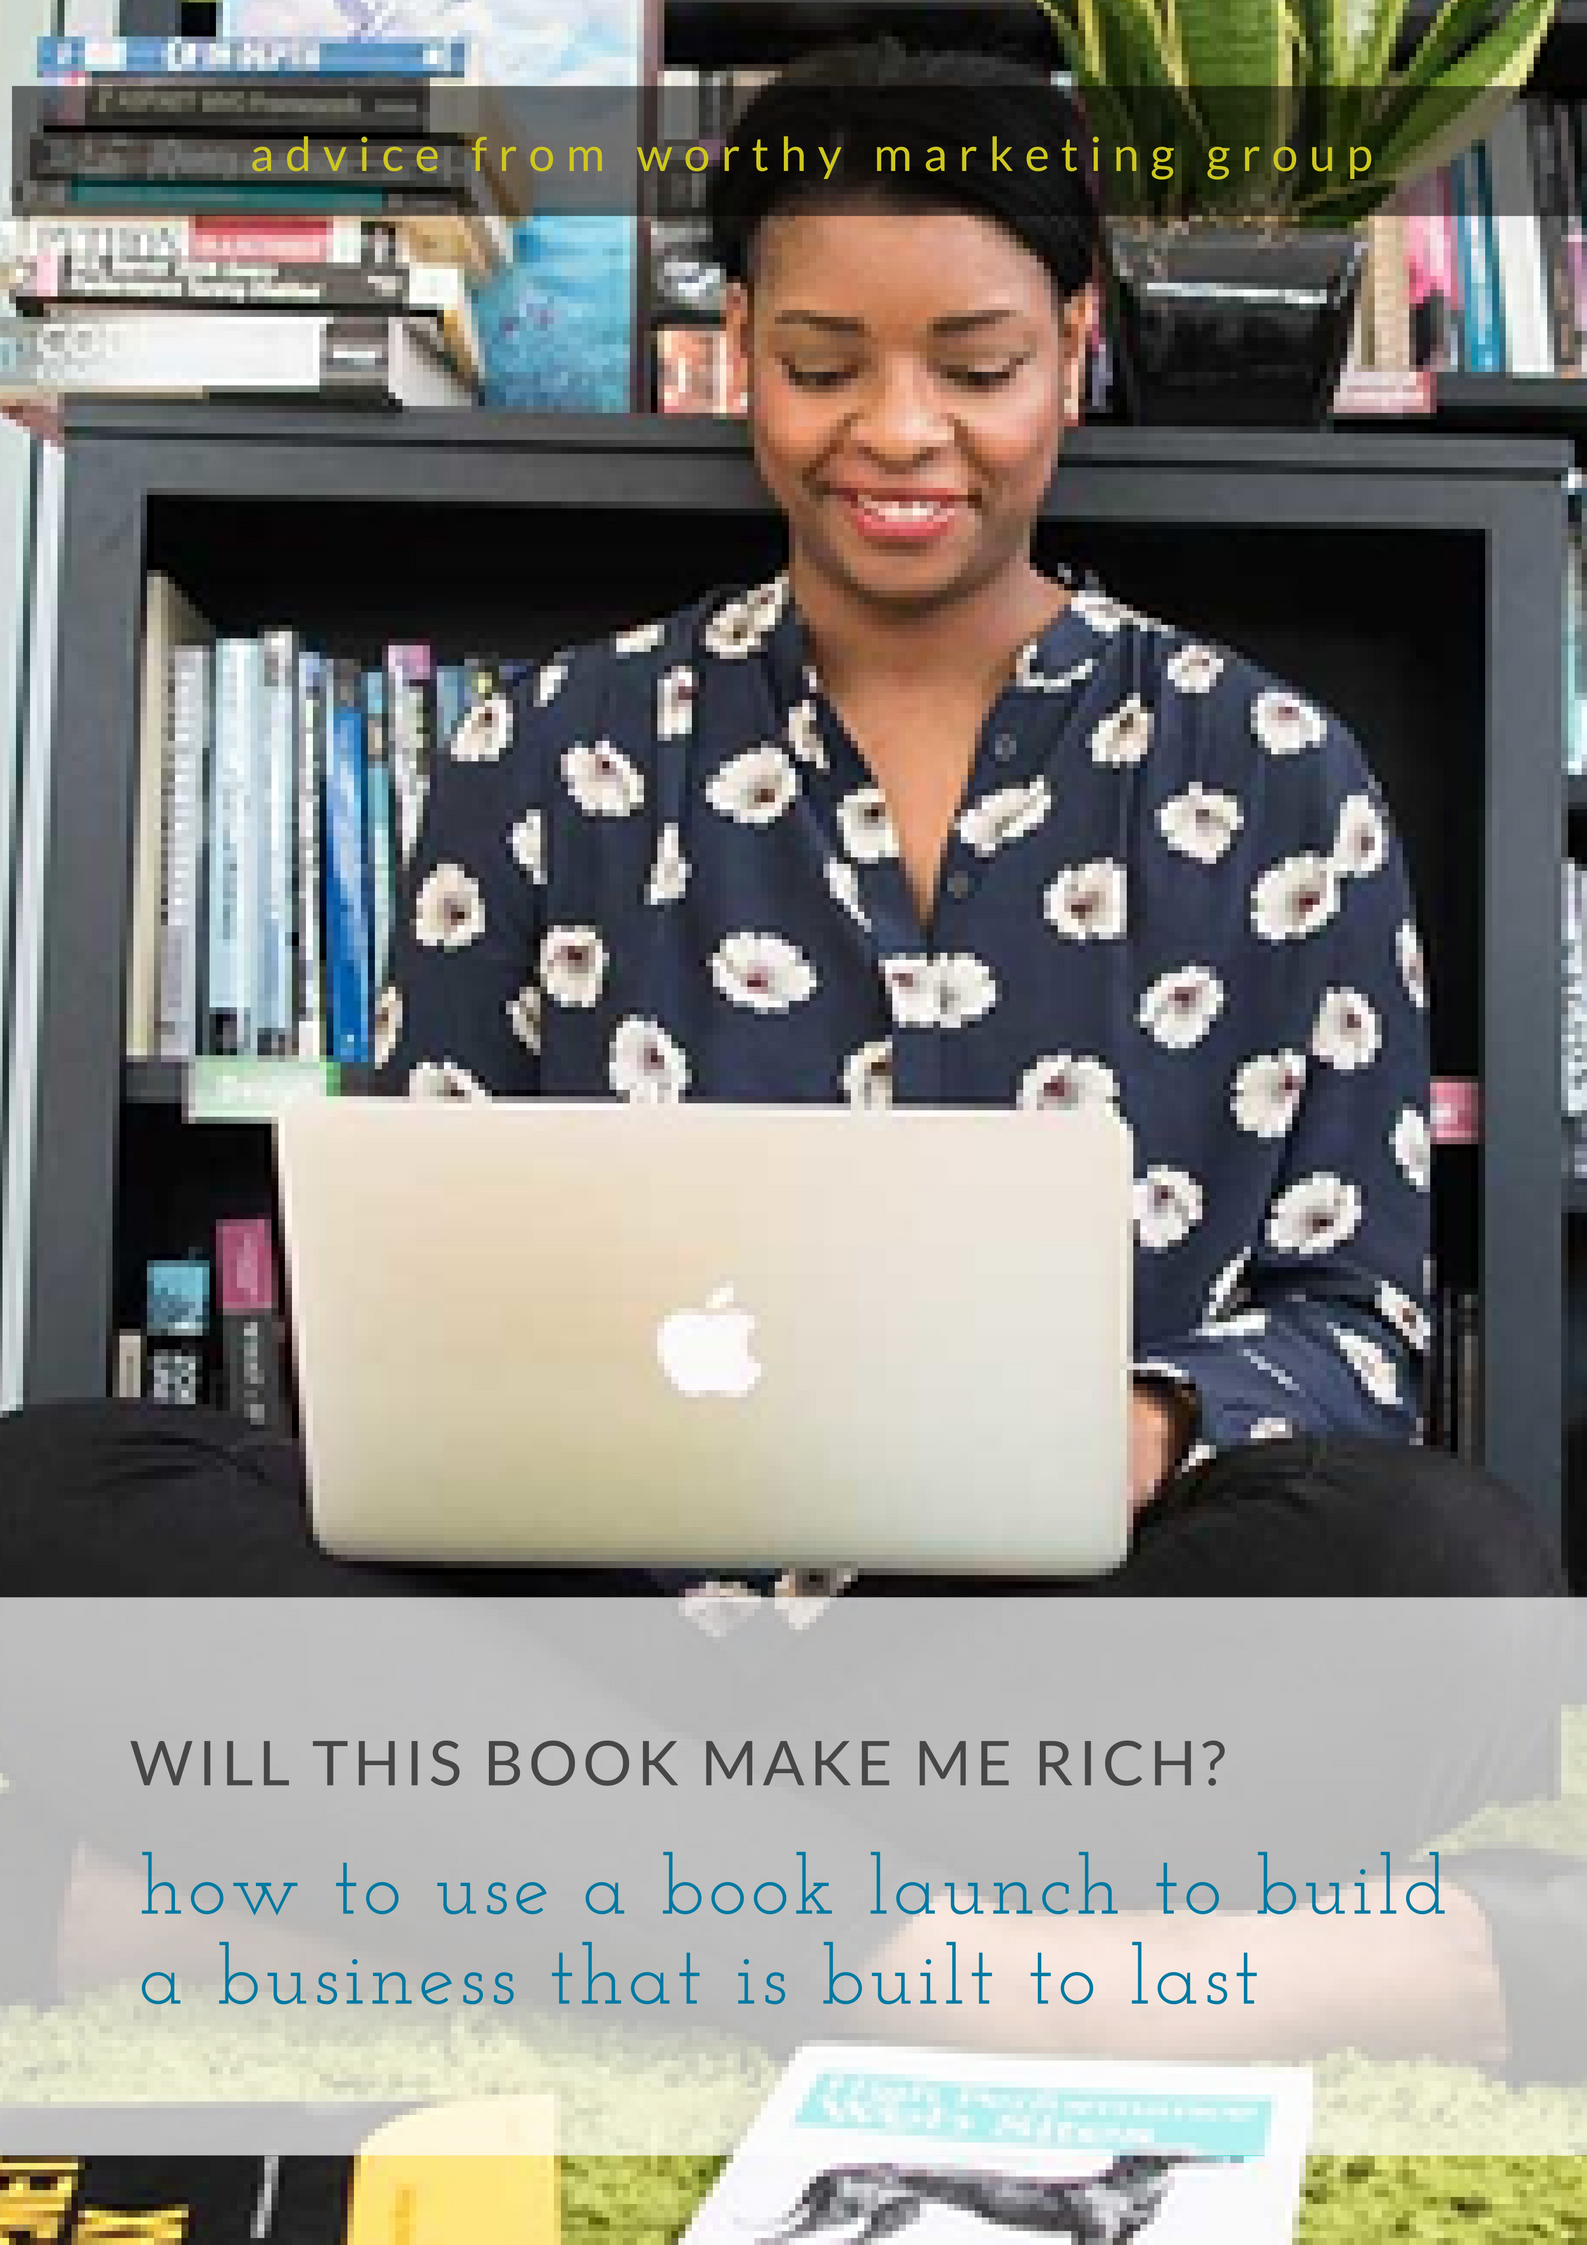 will this book make me rich? why you need a plan beyond your publishing date - book launch book to last   The Worthy Marketing Group Blog